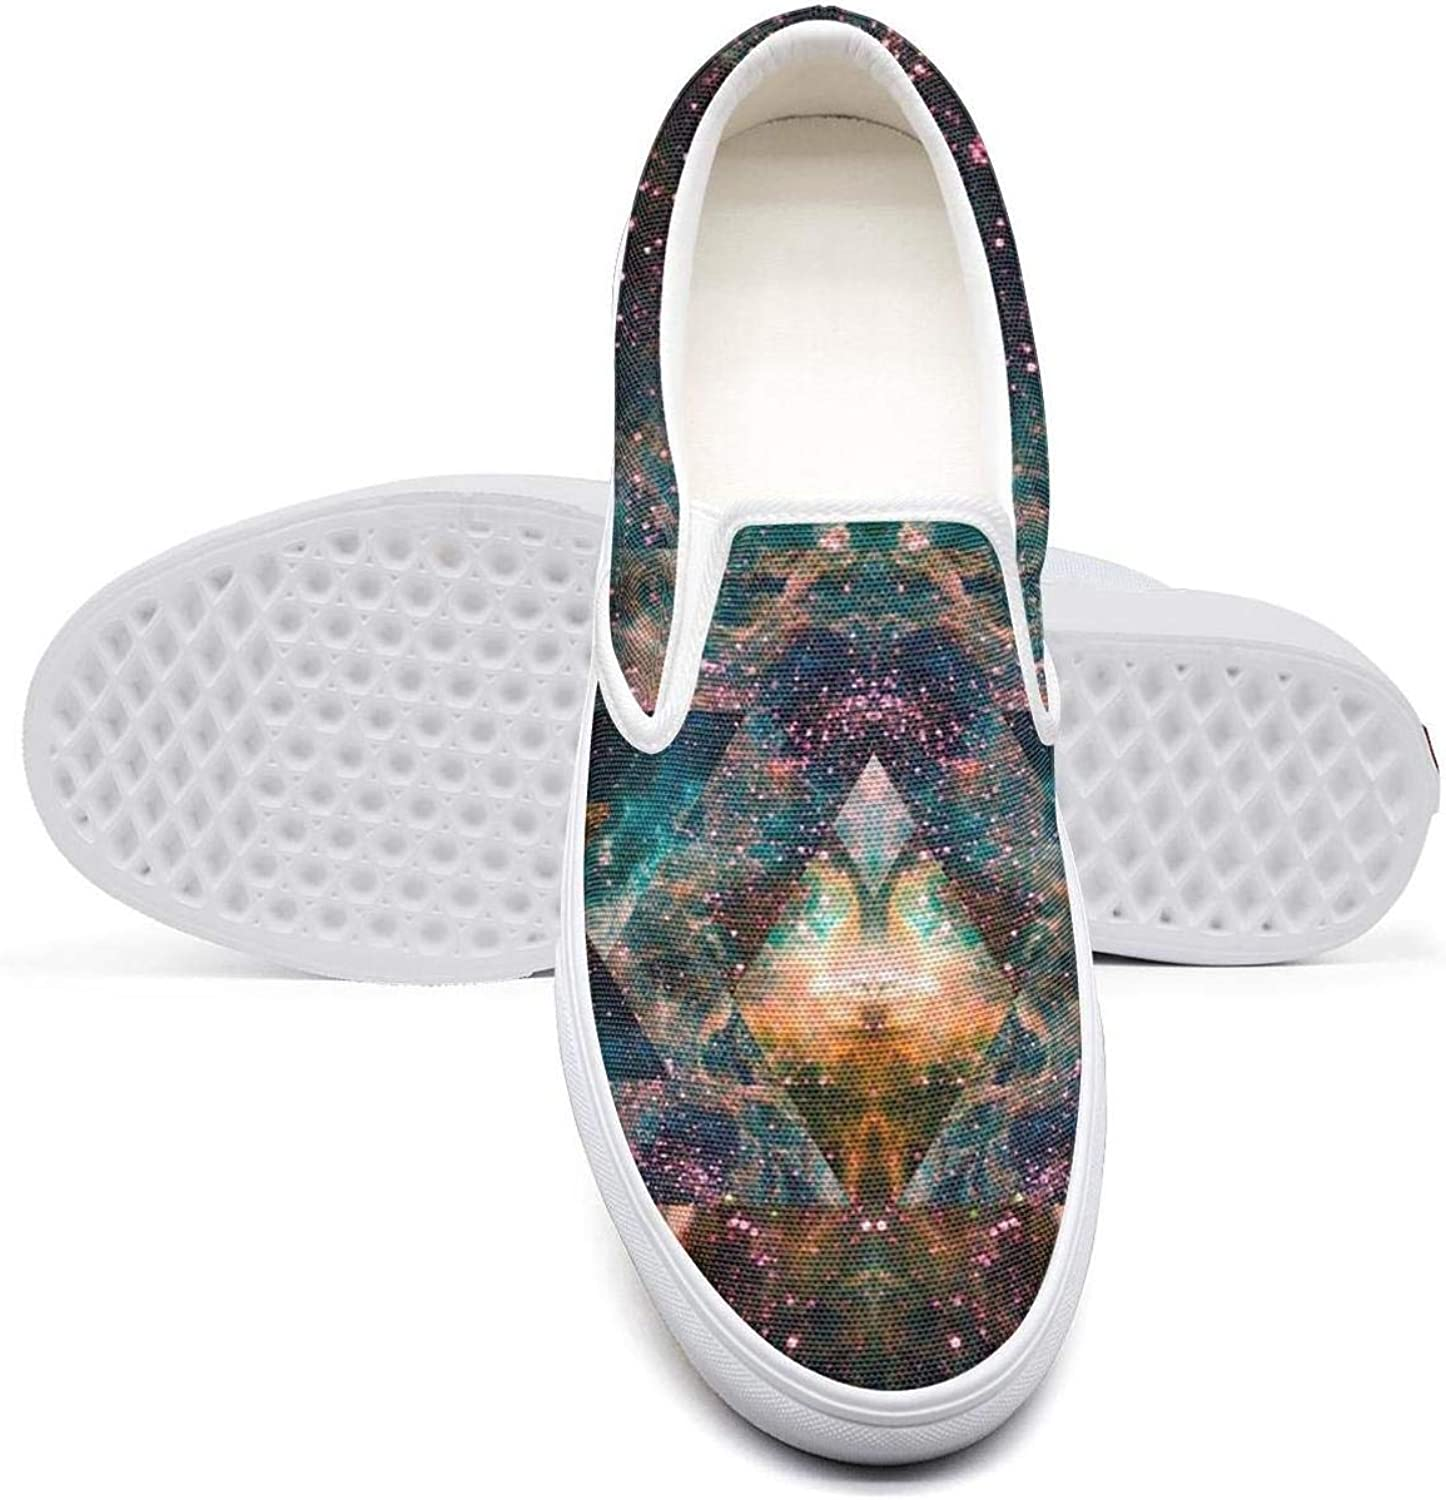 Women's Colorful Art Abstract Cartoon Pattern Casual Sneaker Hip hop Canvas Jogger Rubber Sole Walking Shoes